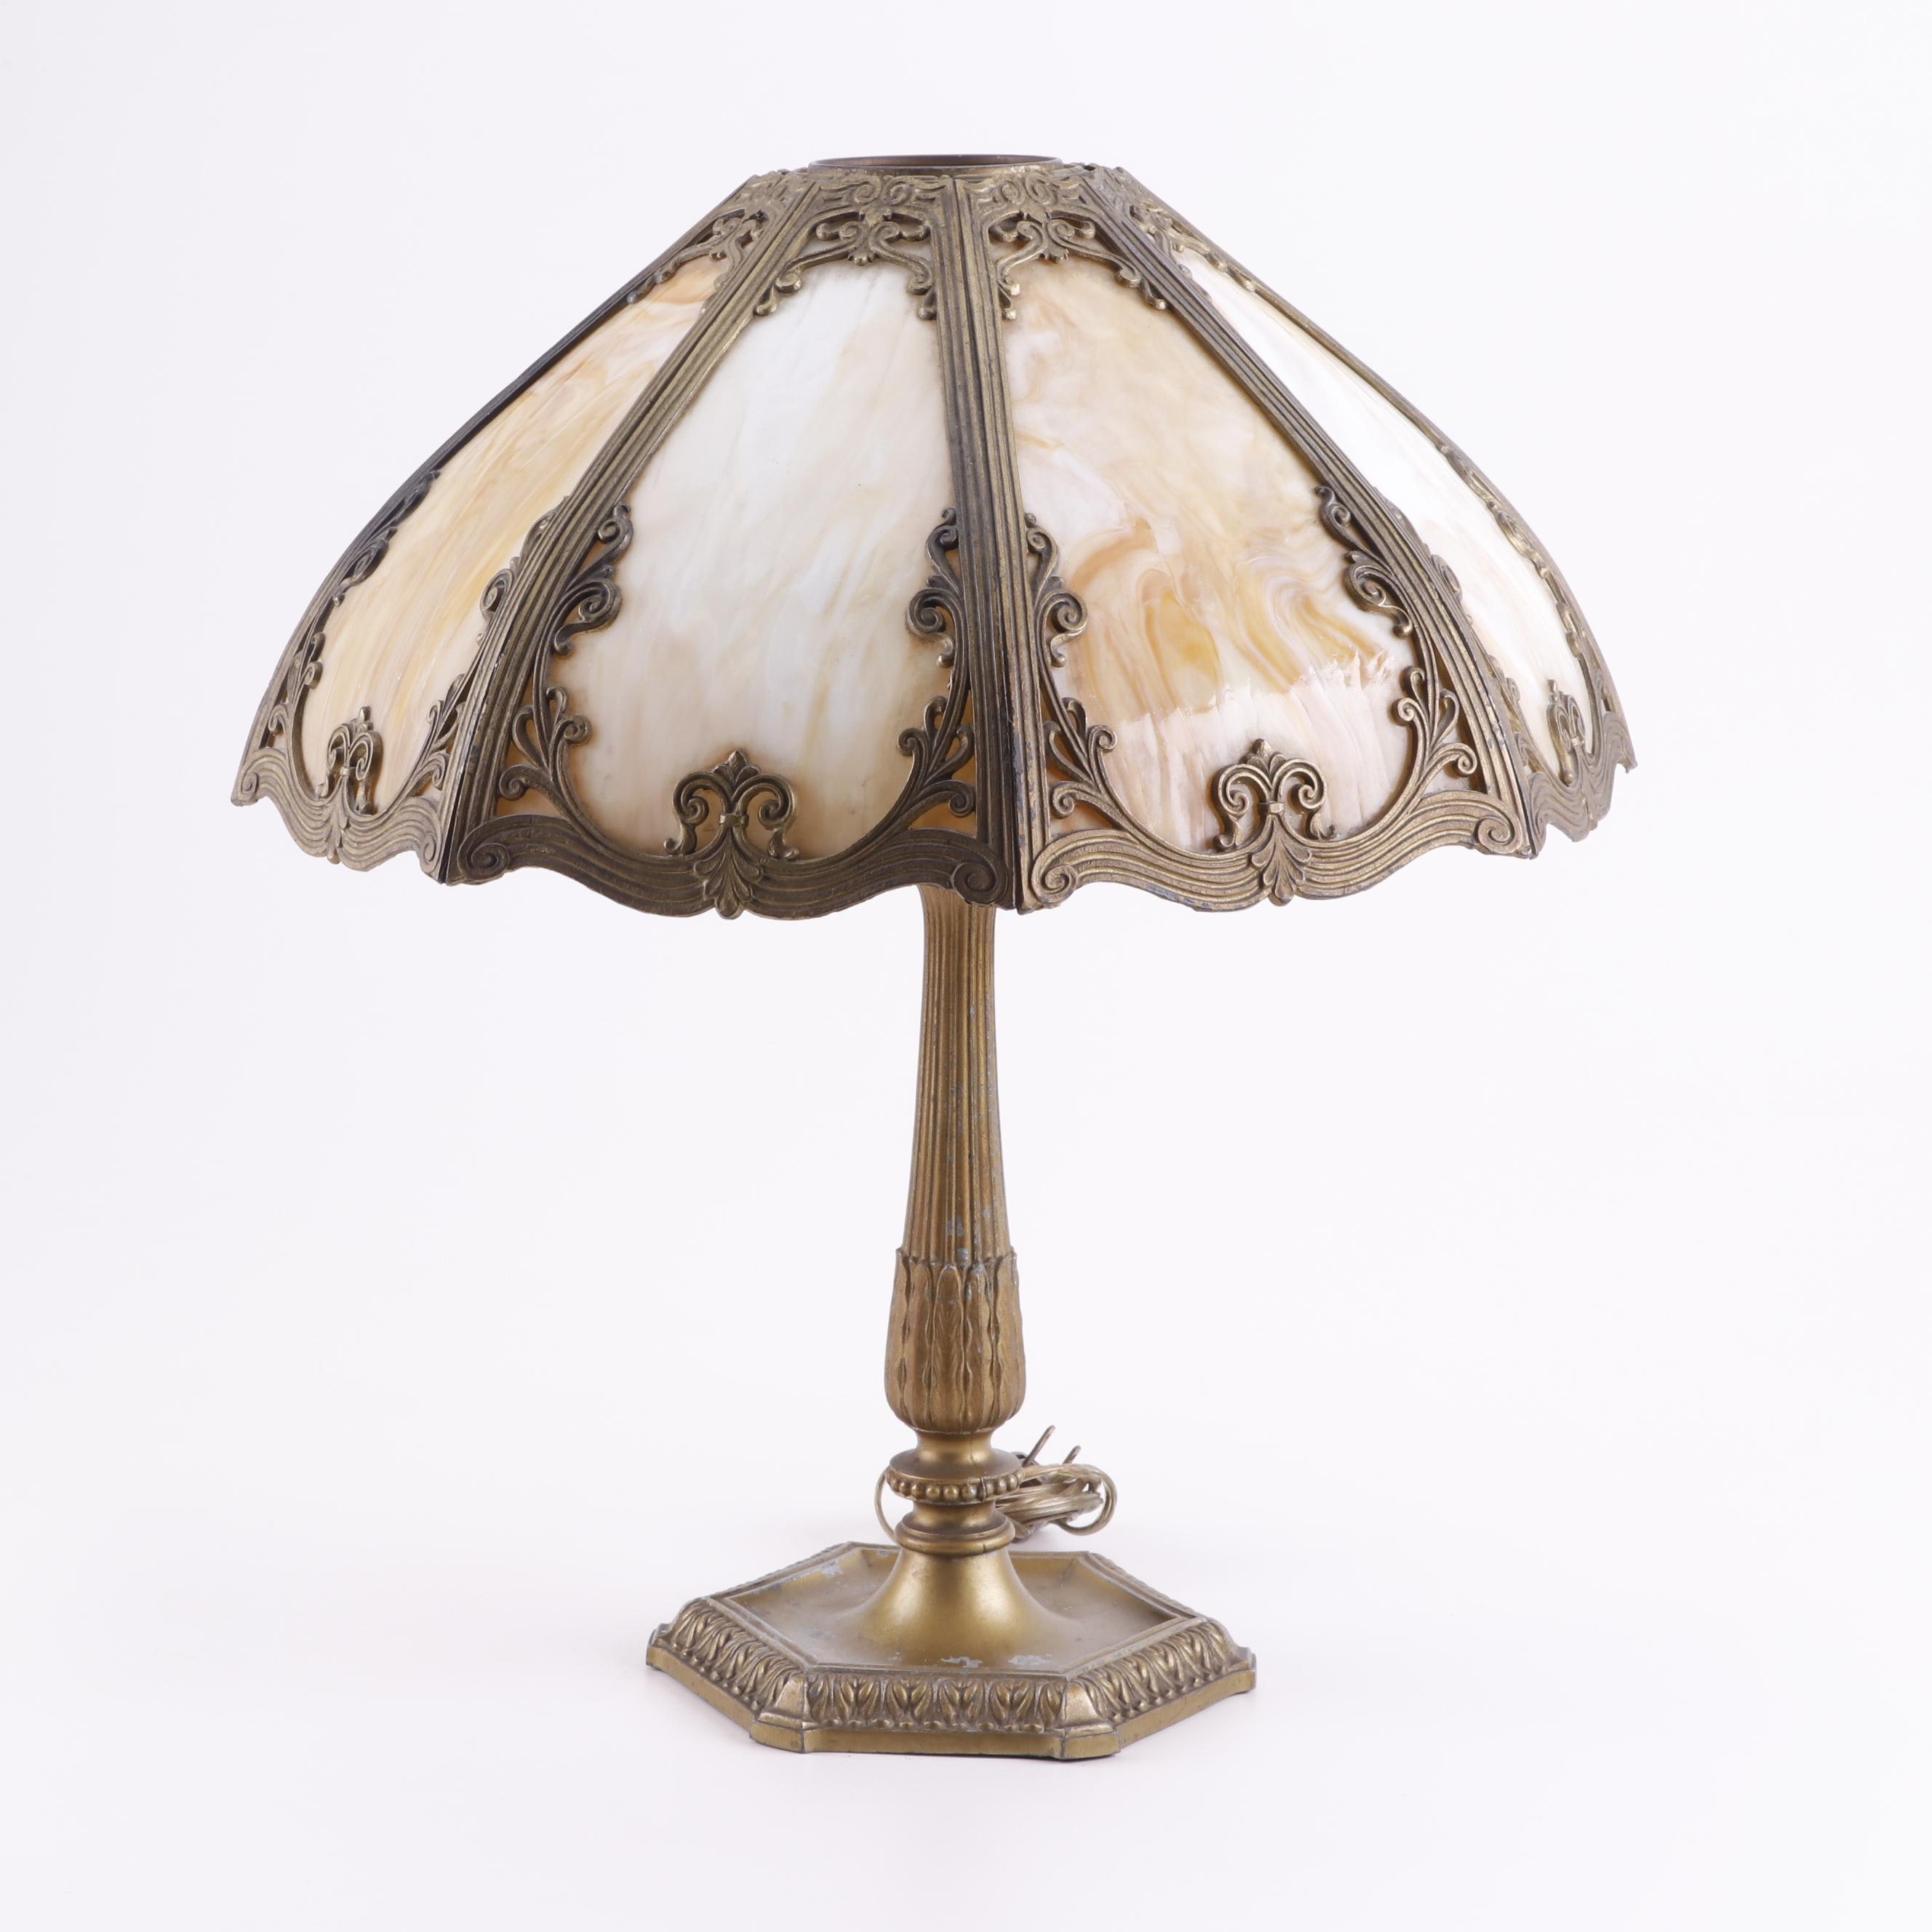 Cast Metal Table Lamp with Slag Glass and Overlay Shade, Early 20th Century